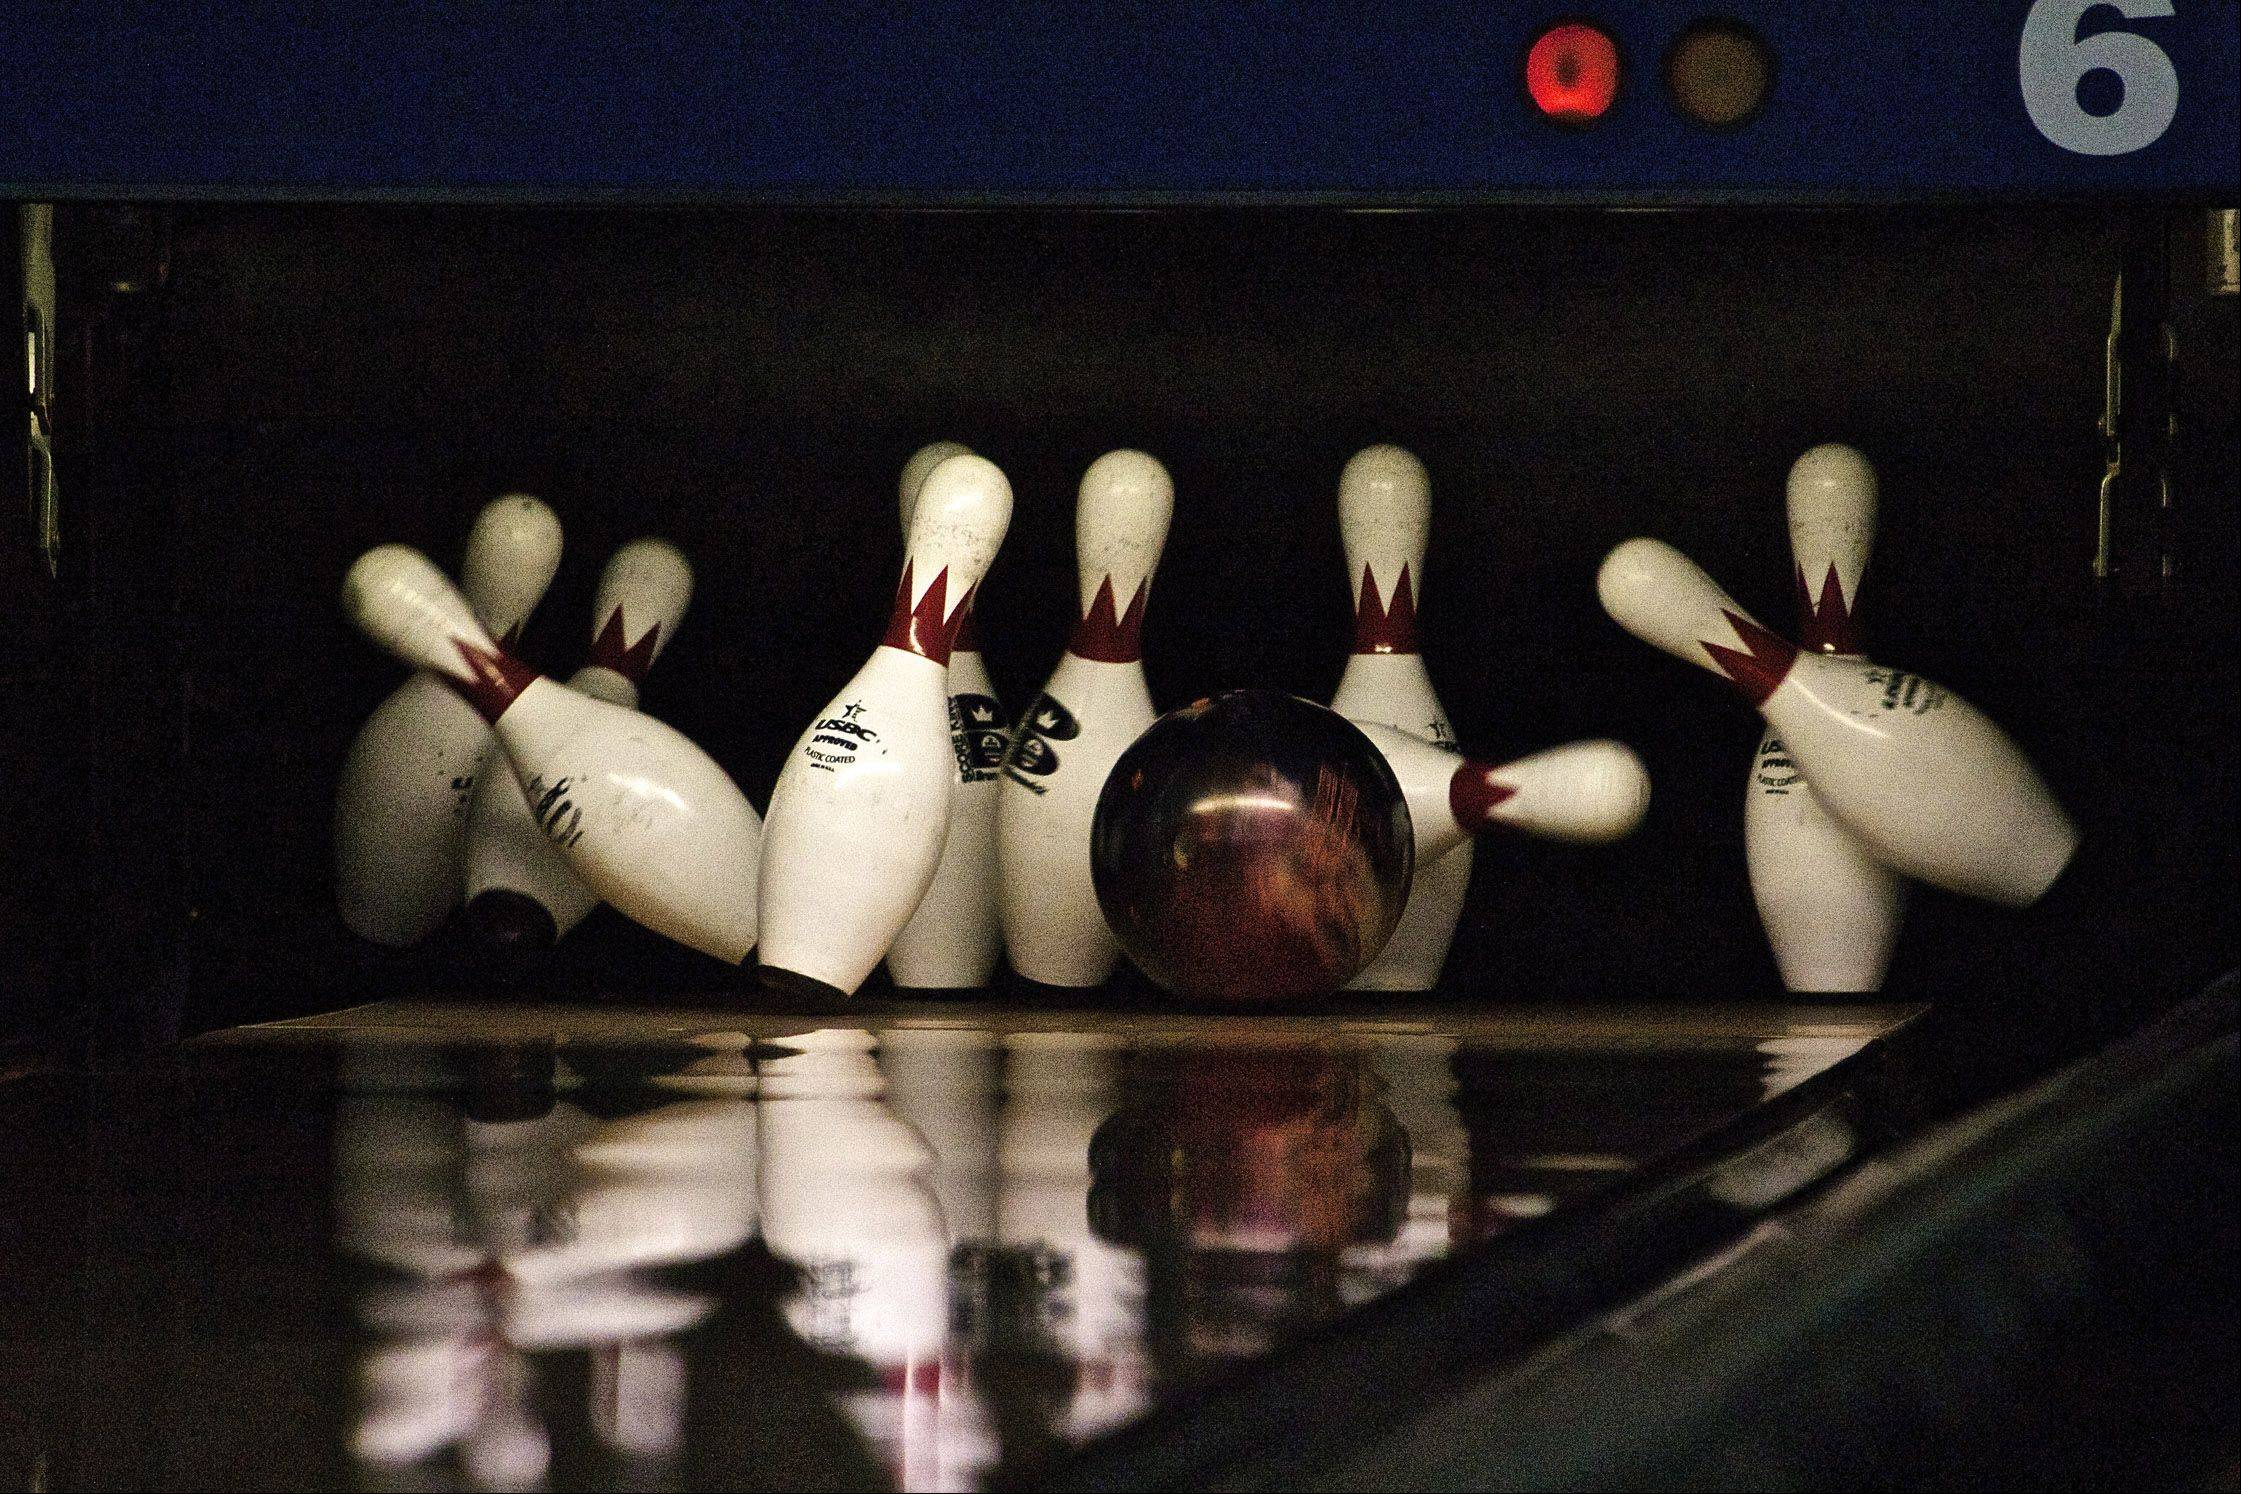 Bowling pins are caught in mid air after the ball strikes them.